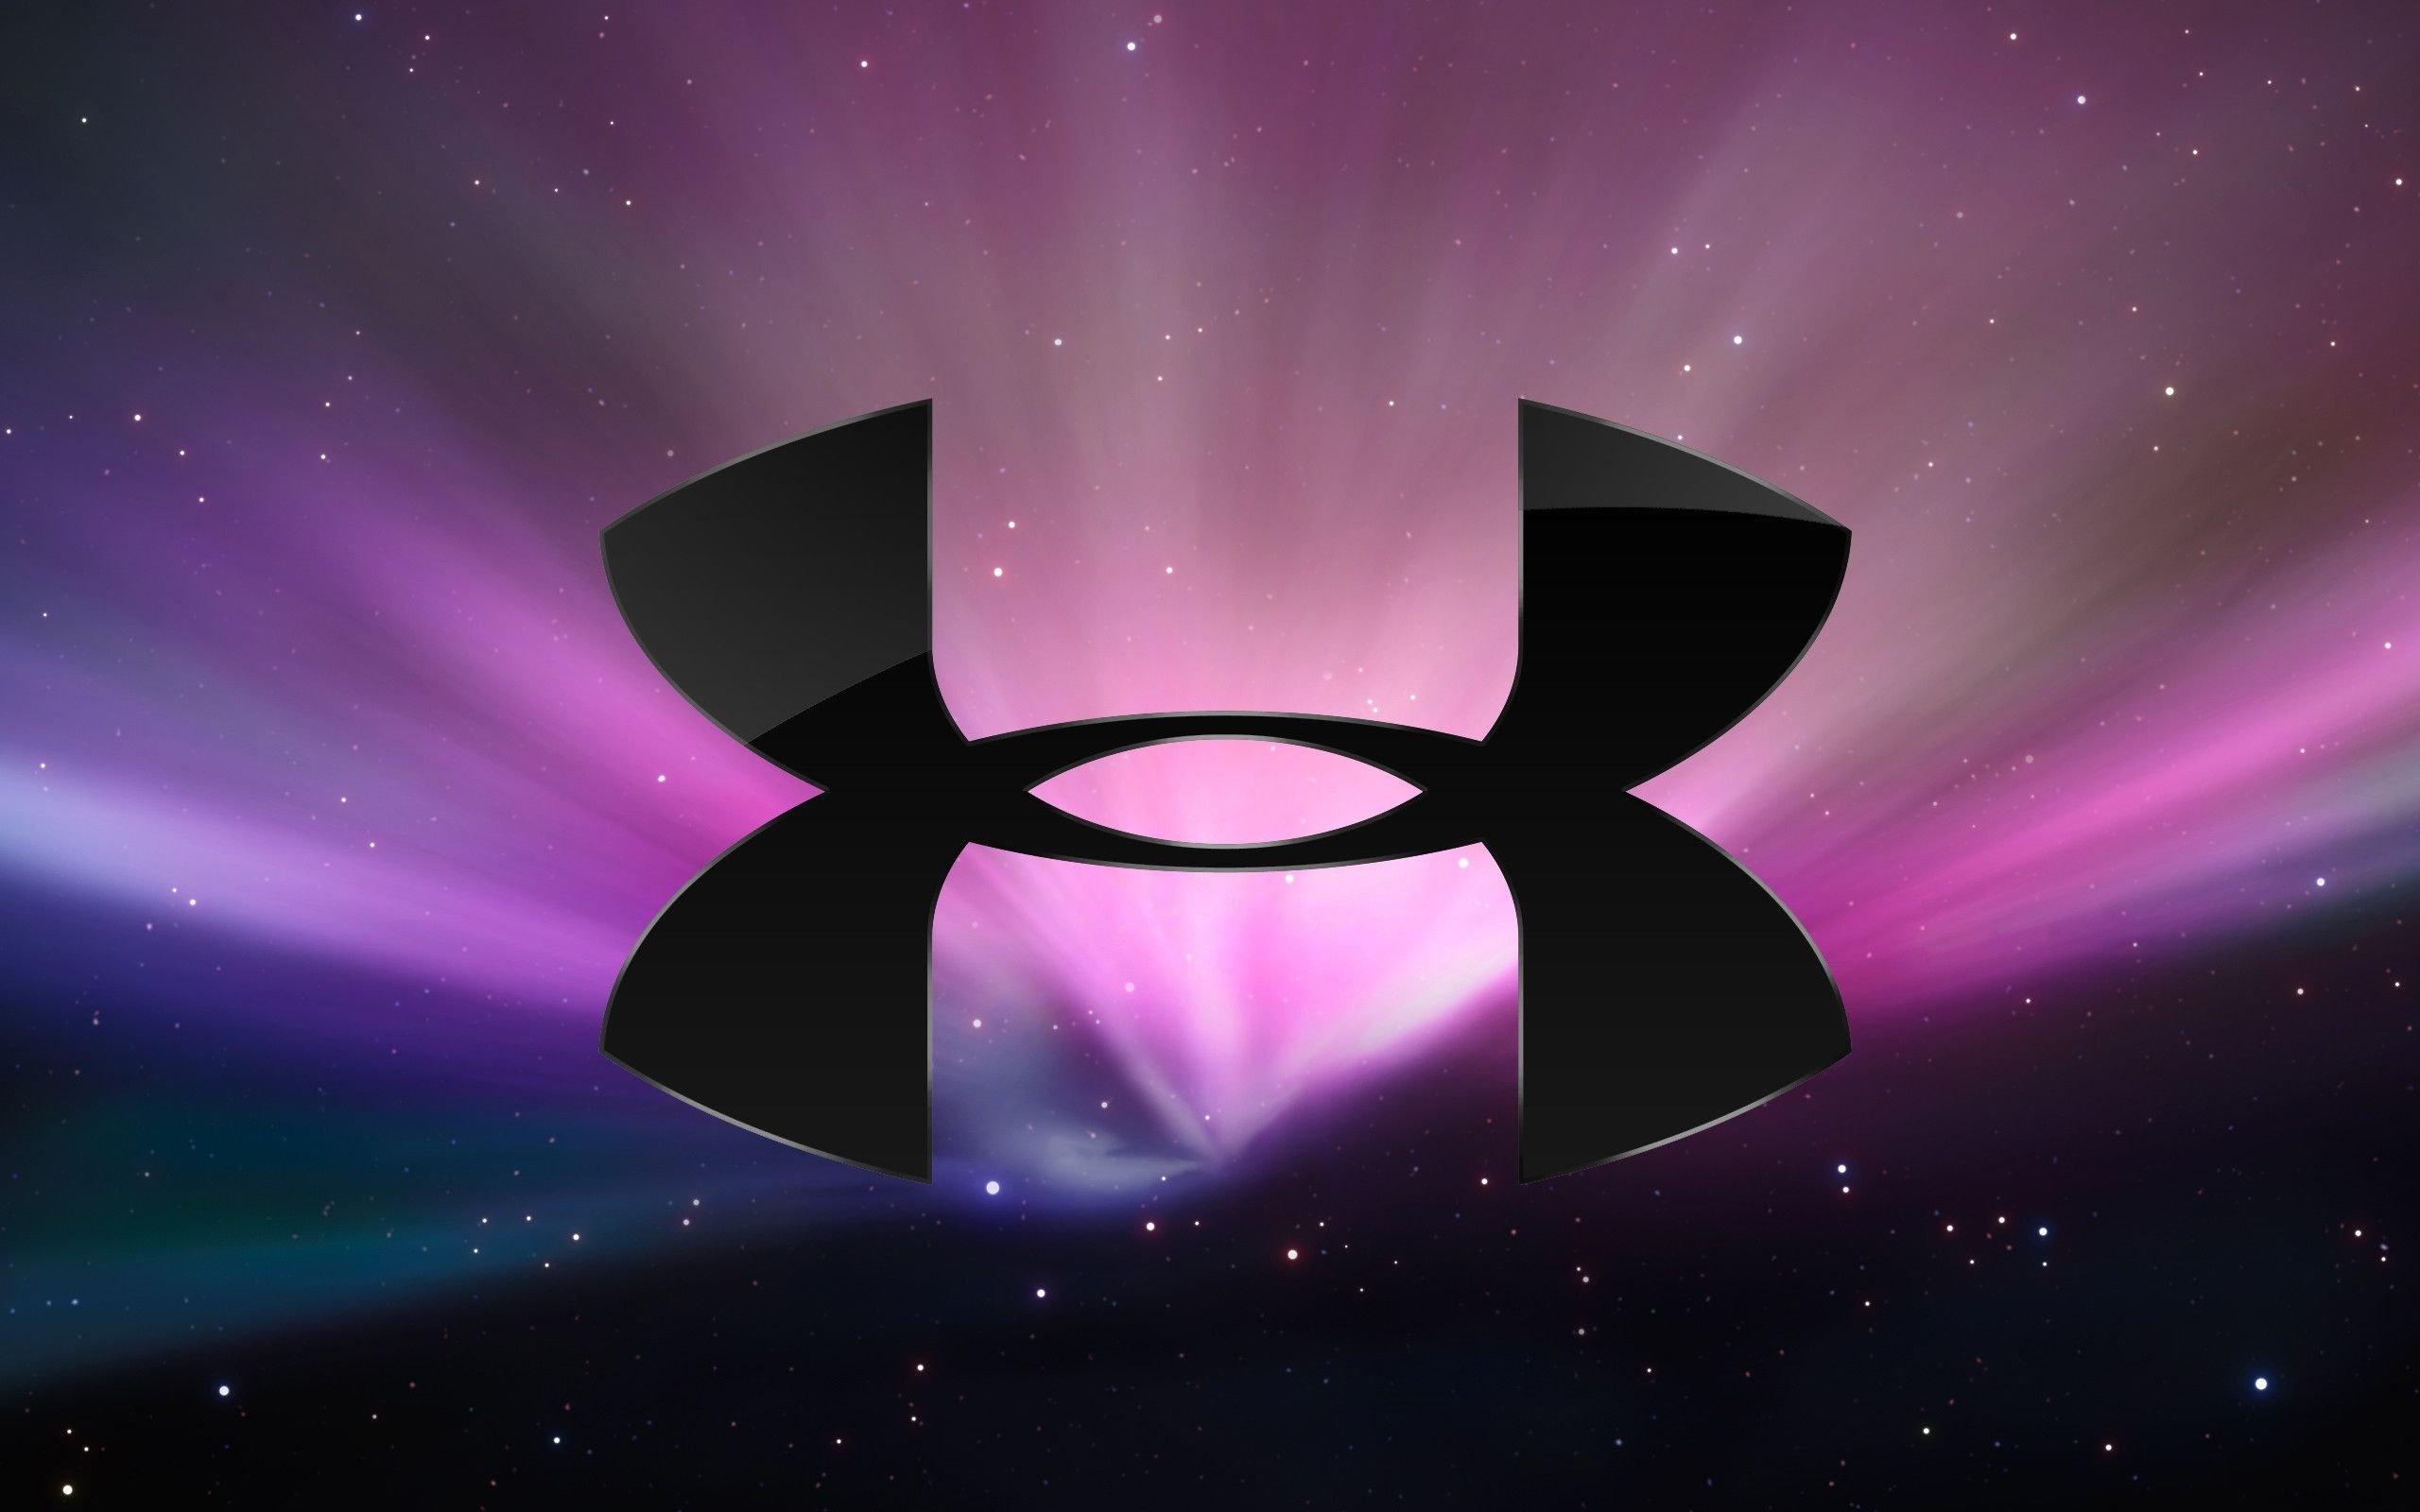 photos under armour wallpapers hd. - media file | pixelstalk